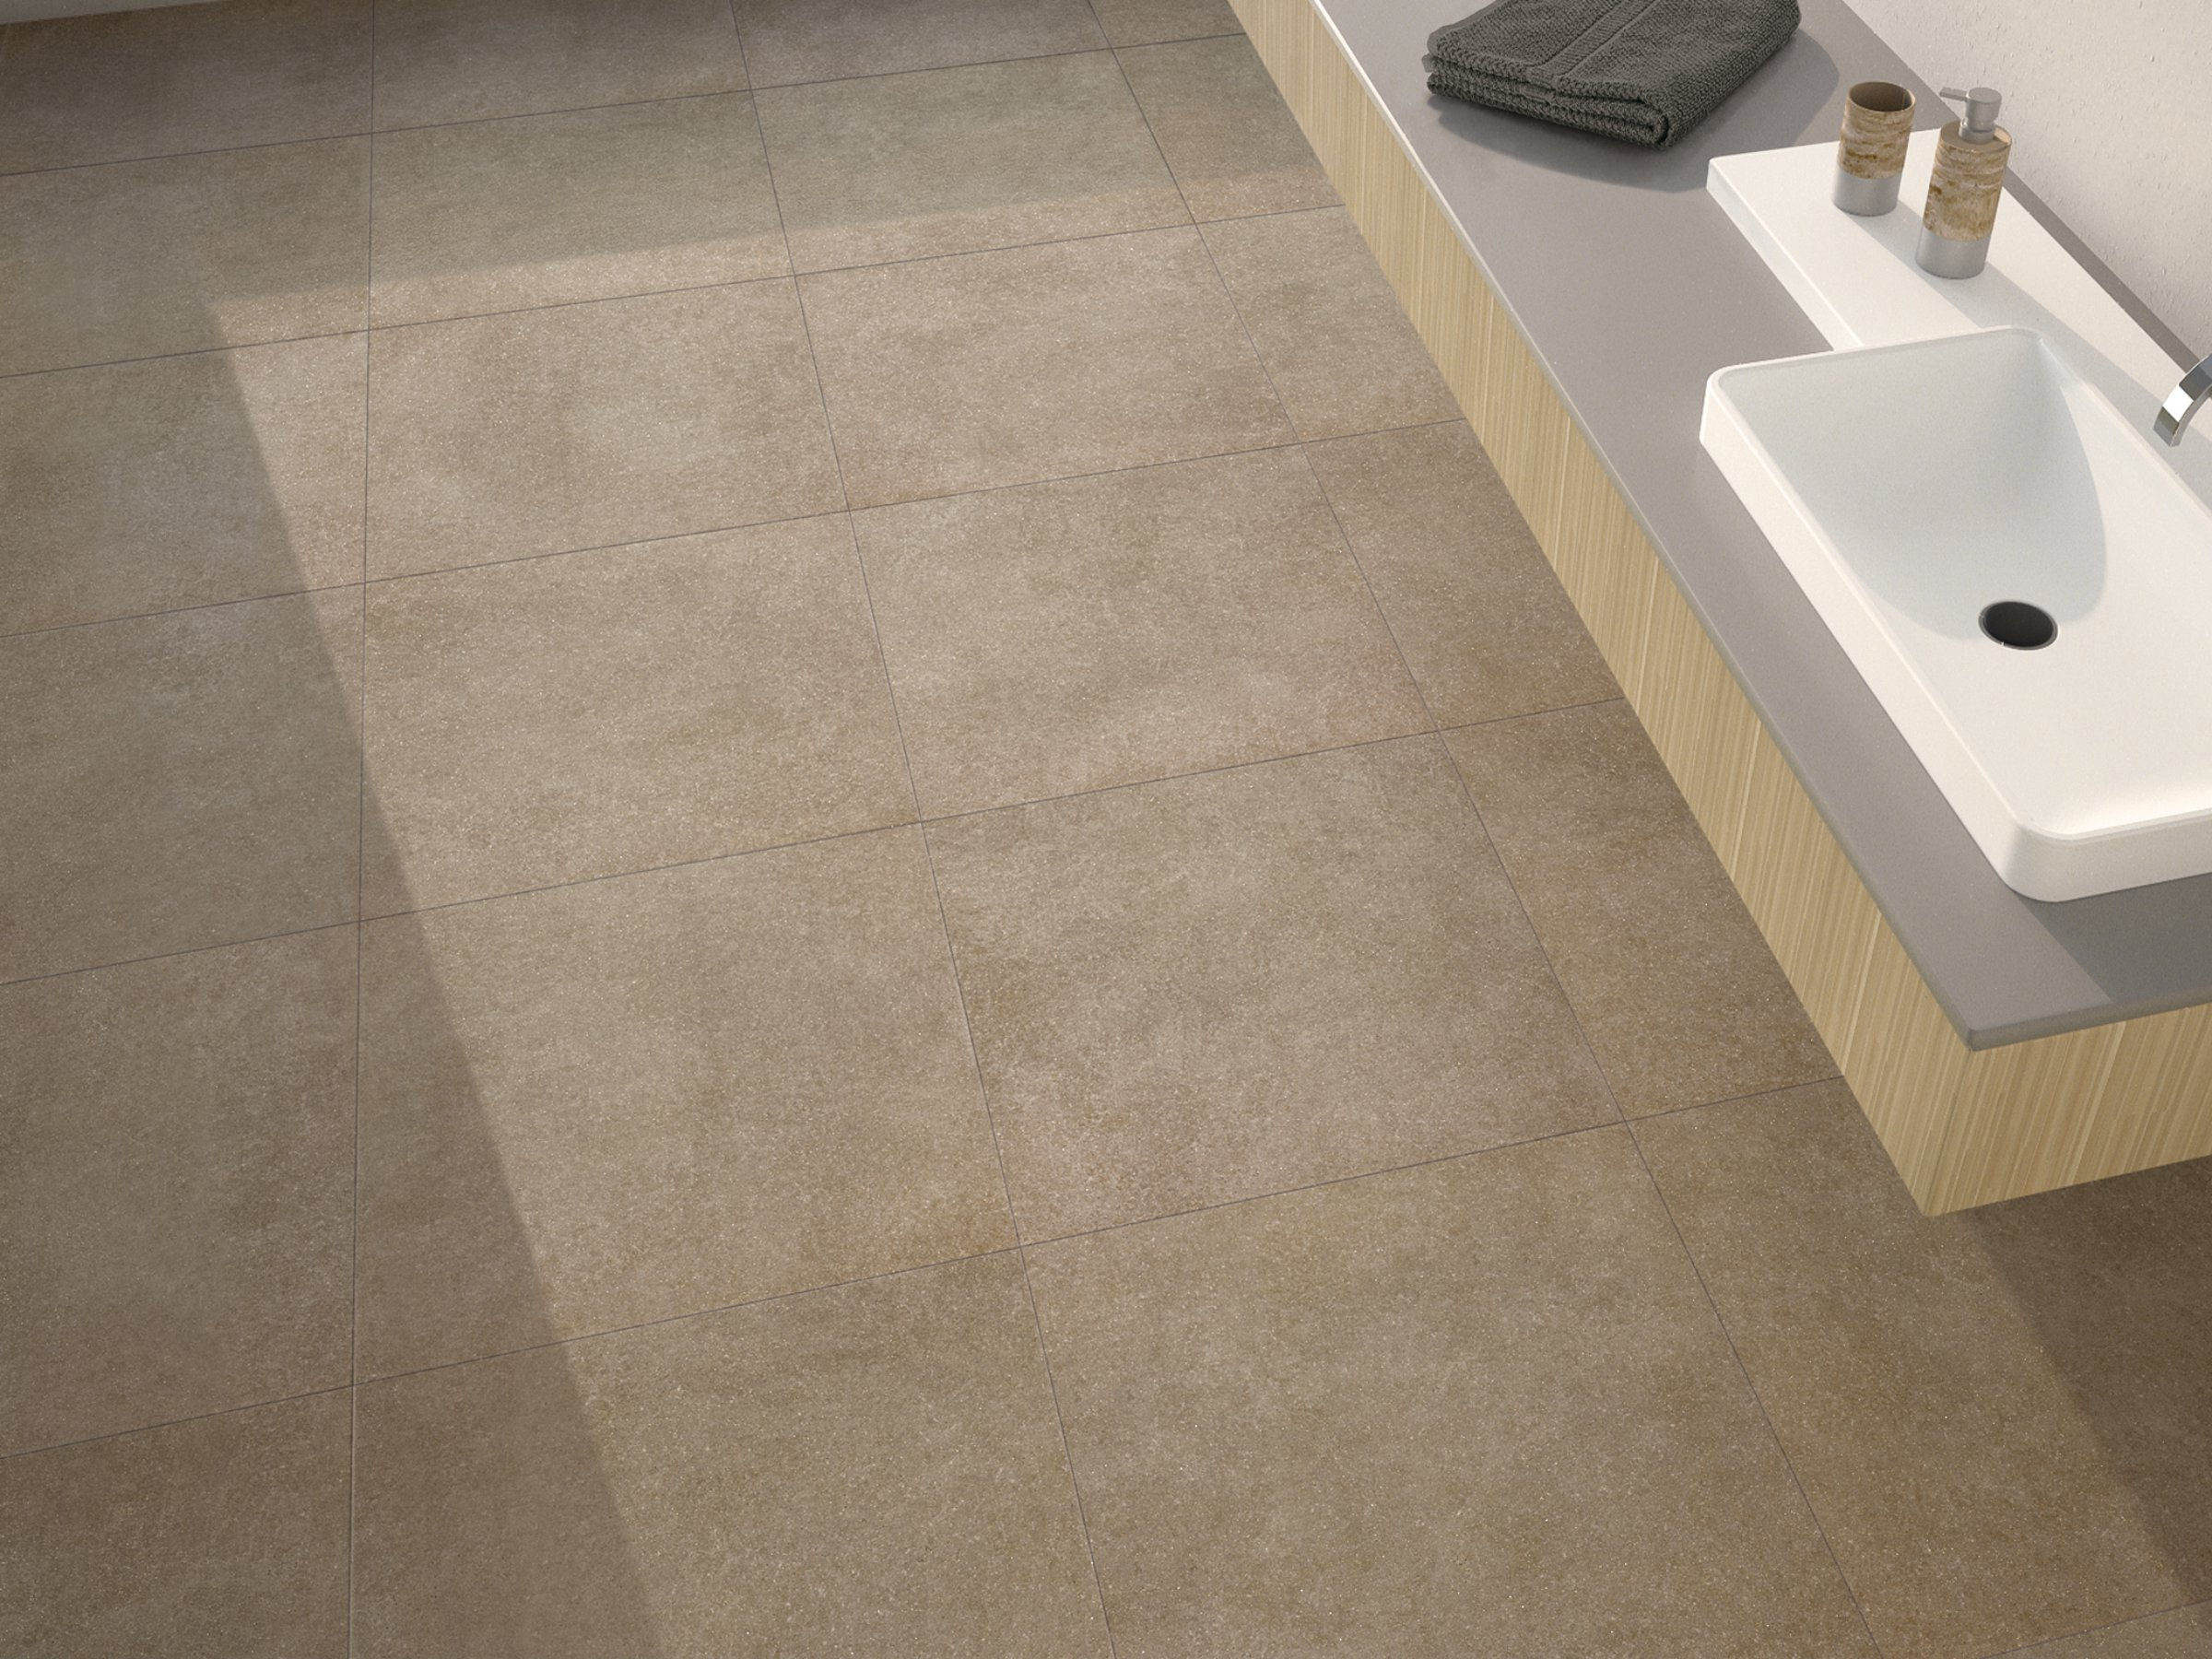 Porcelain stoneware wall floor tiles classique by for Caesar ceramiche